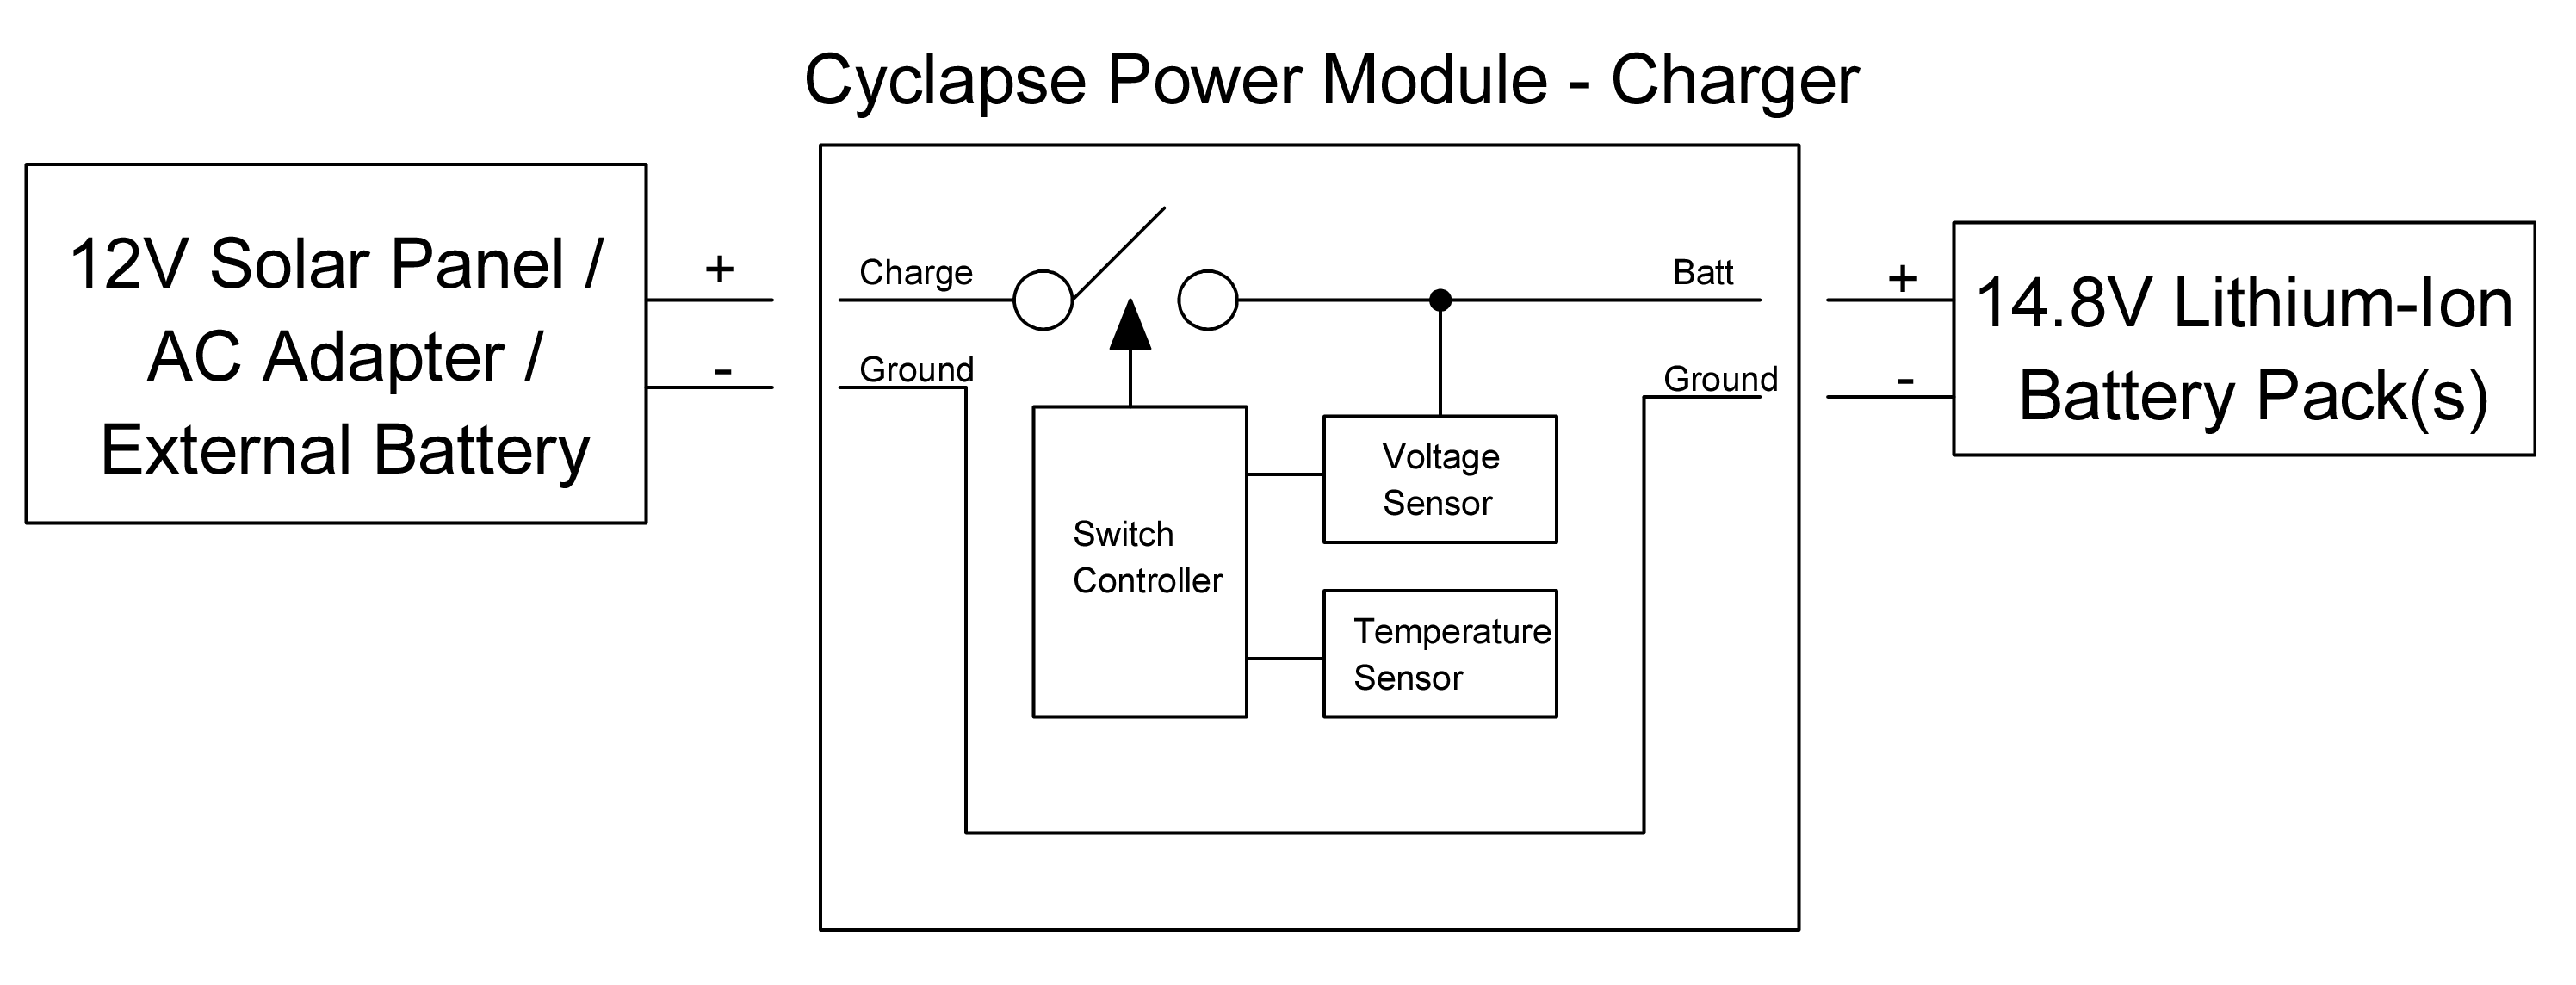 Cyclapse Power Module For Usb Pack Wiring Diagram Charger